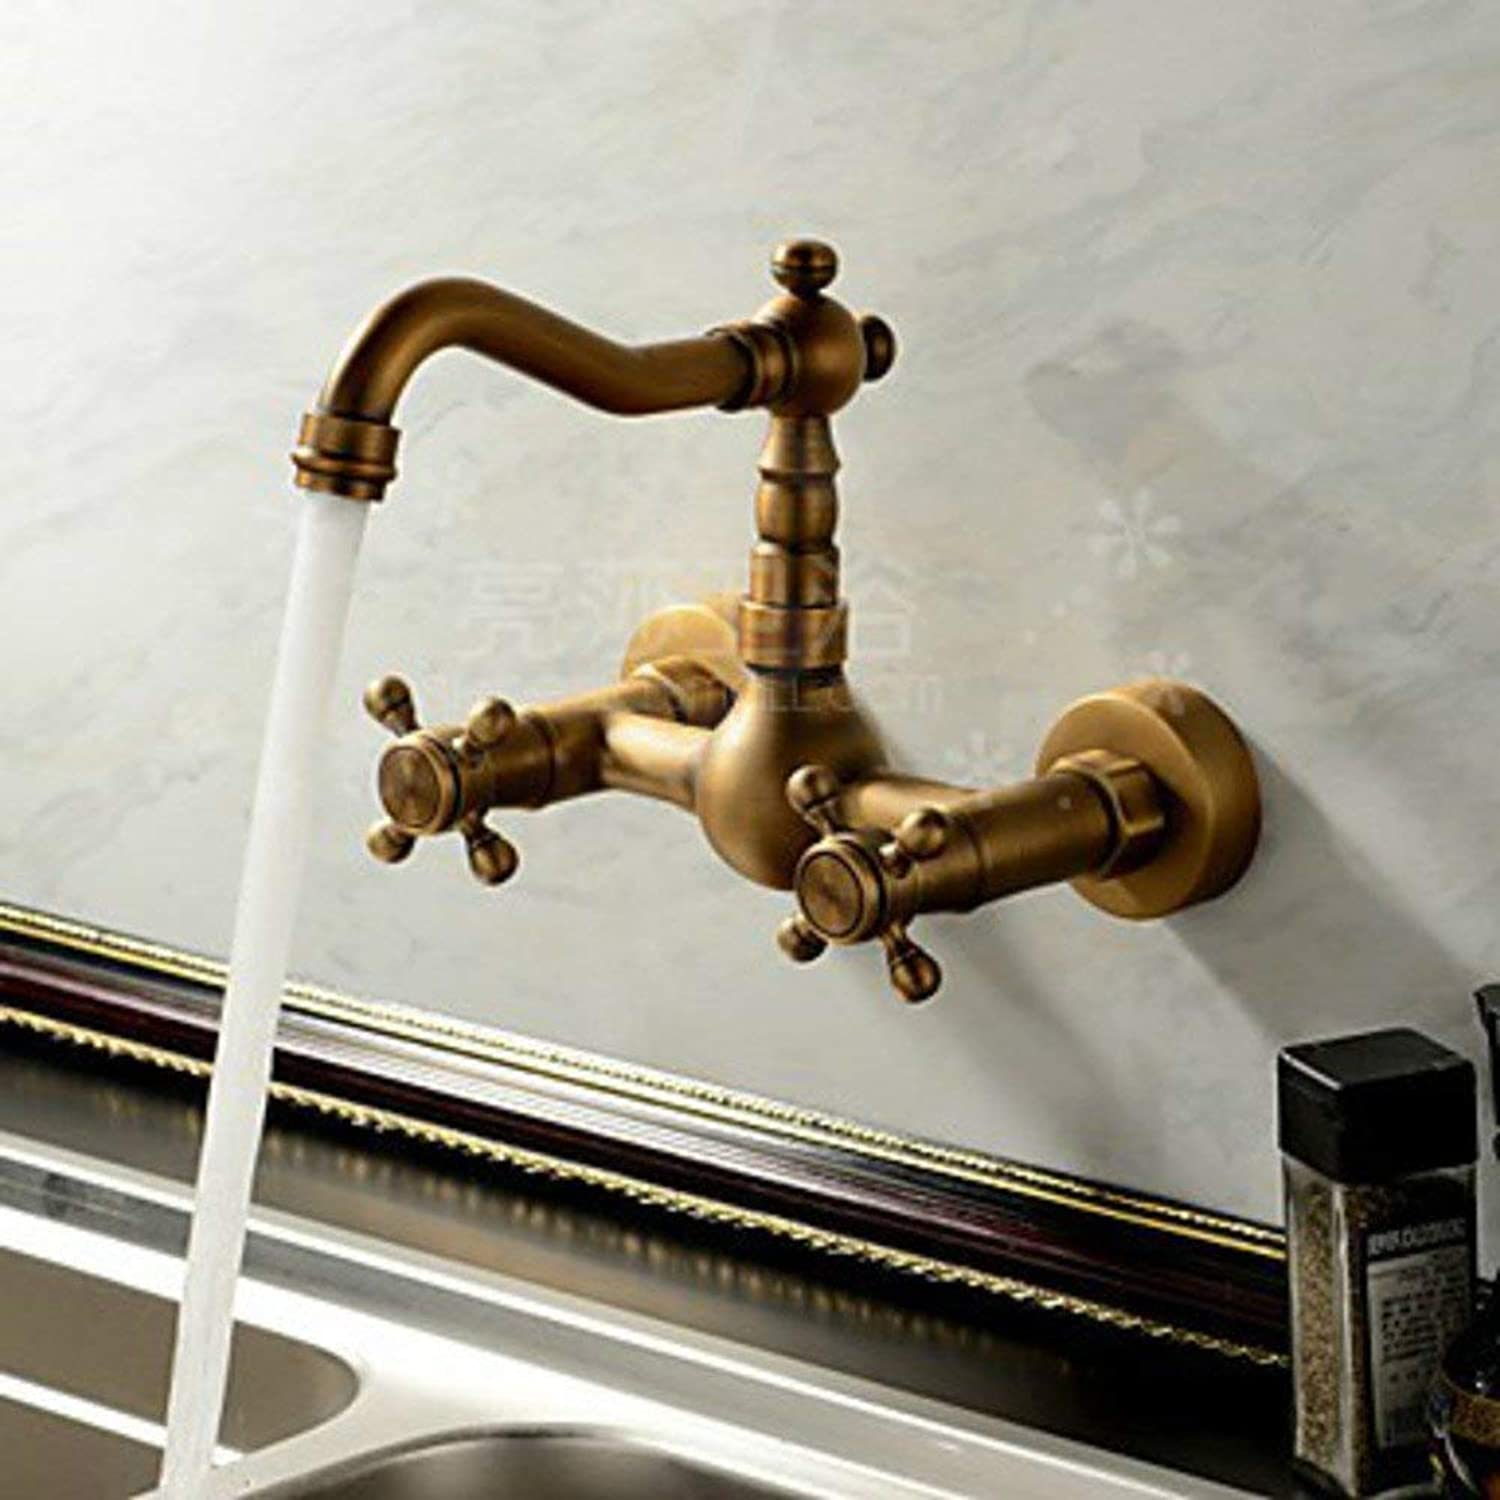 FuweiEncore Antique-wall kitchen faucet European-style all-copper hot and cold taps Sink faucet (color   -, Size   -)